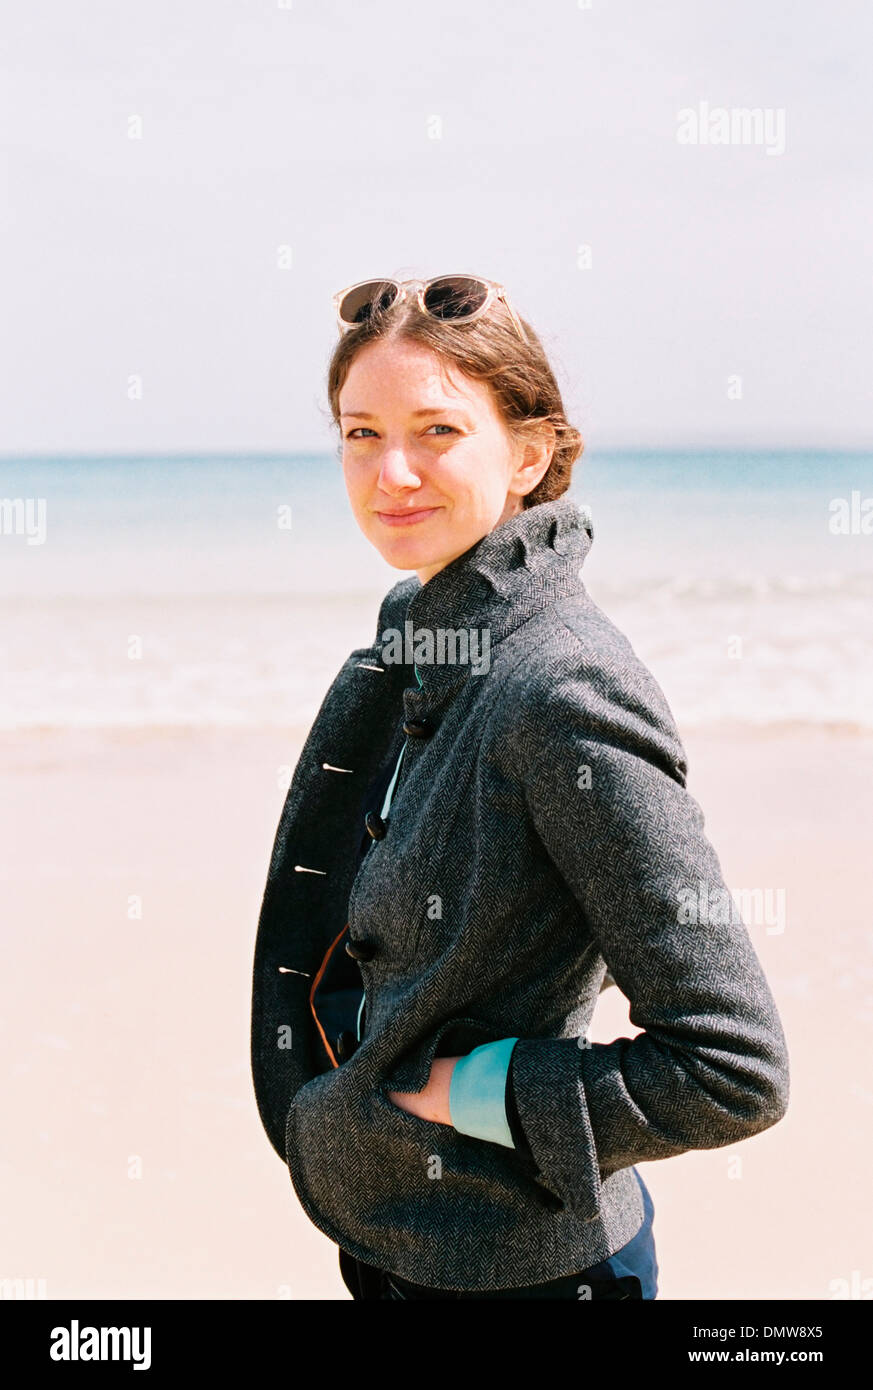 A woman in a grey coat on  beach. - Stock Image